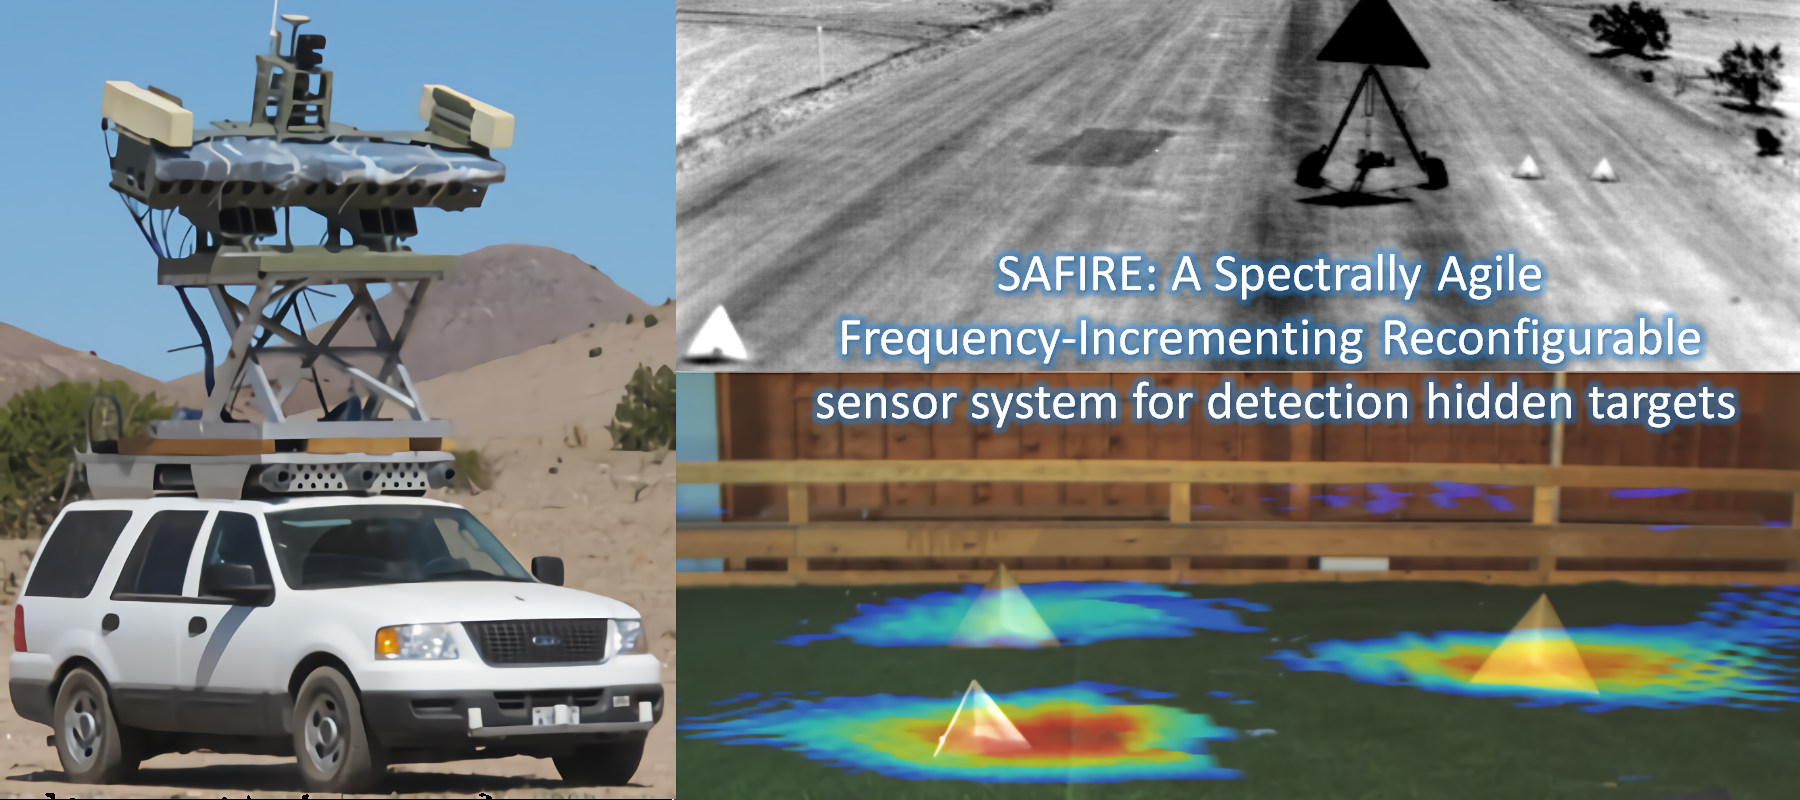 SAFIRE: A Spectrally Agile Frequency-Incrementing REconfigurable sensor system for detecting hidden targets